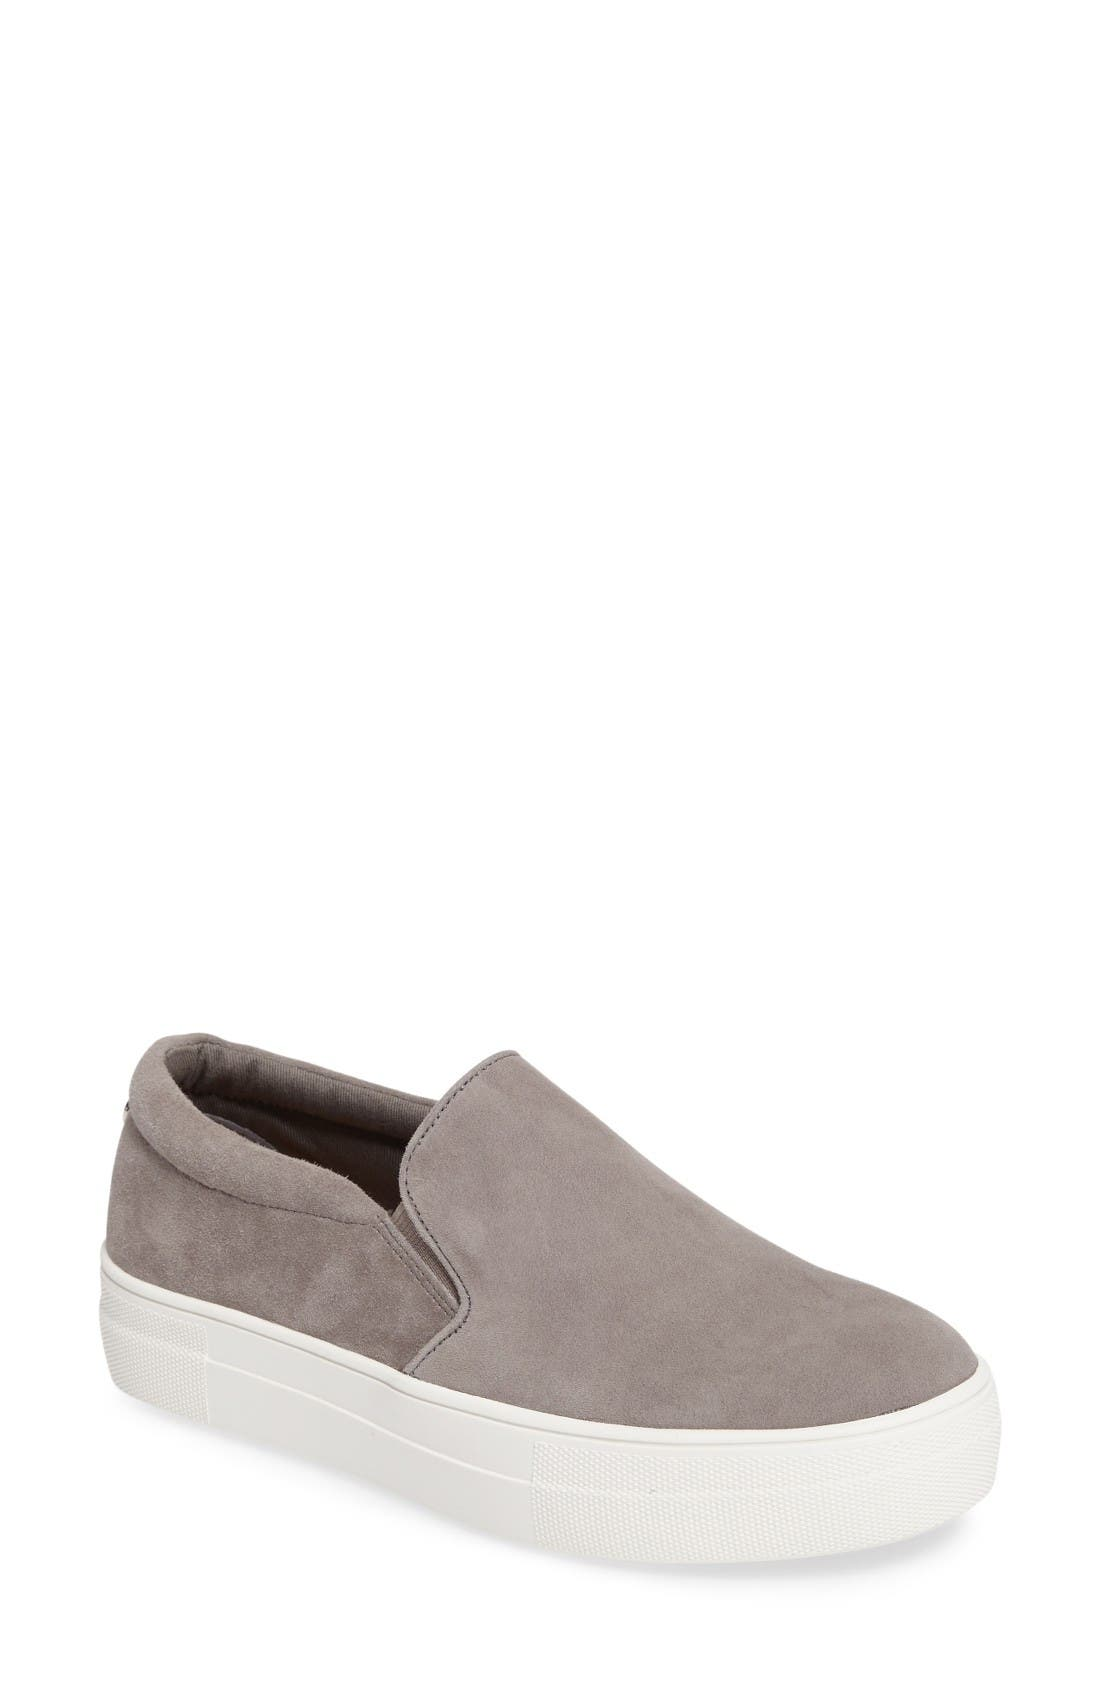 Alternate Image 1 Selected - Steve Madden Gills Platform Slip-On Sneaker (Women)